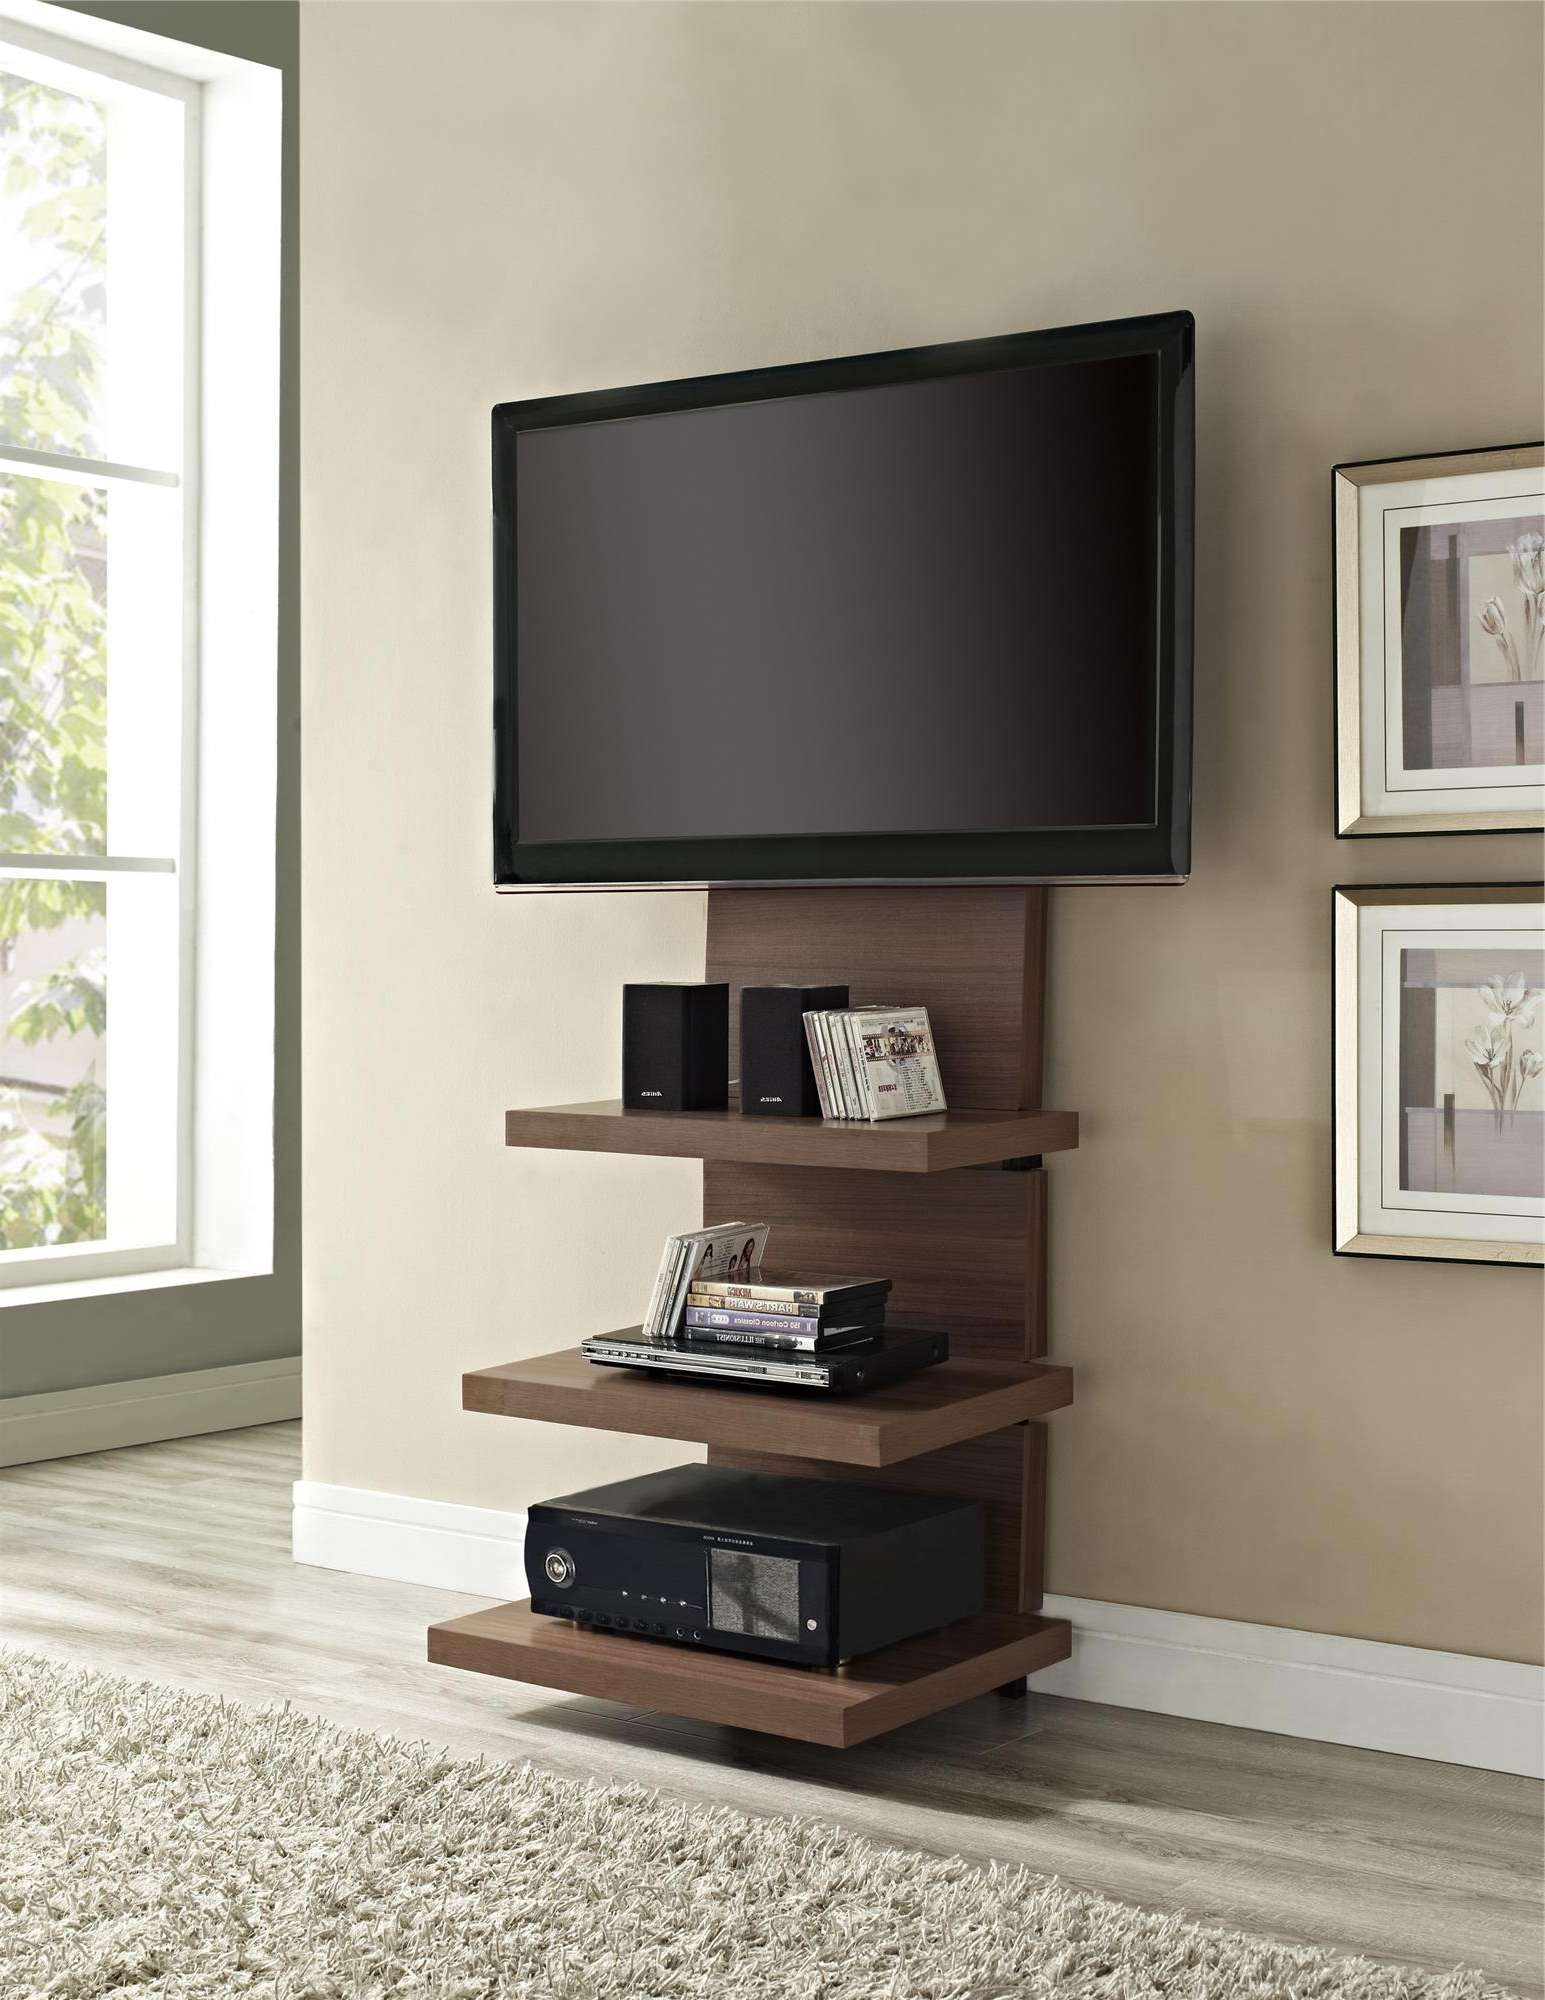 Tall Wood Wall Mounted Tv Stand With Shelves And Mount For Flat In Wall Mounted Tv Stands For Flat Screens (View 13 of 15)